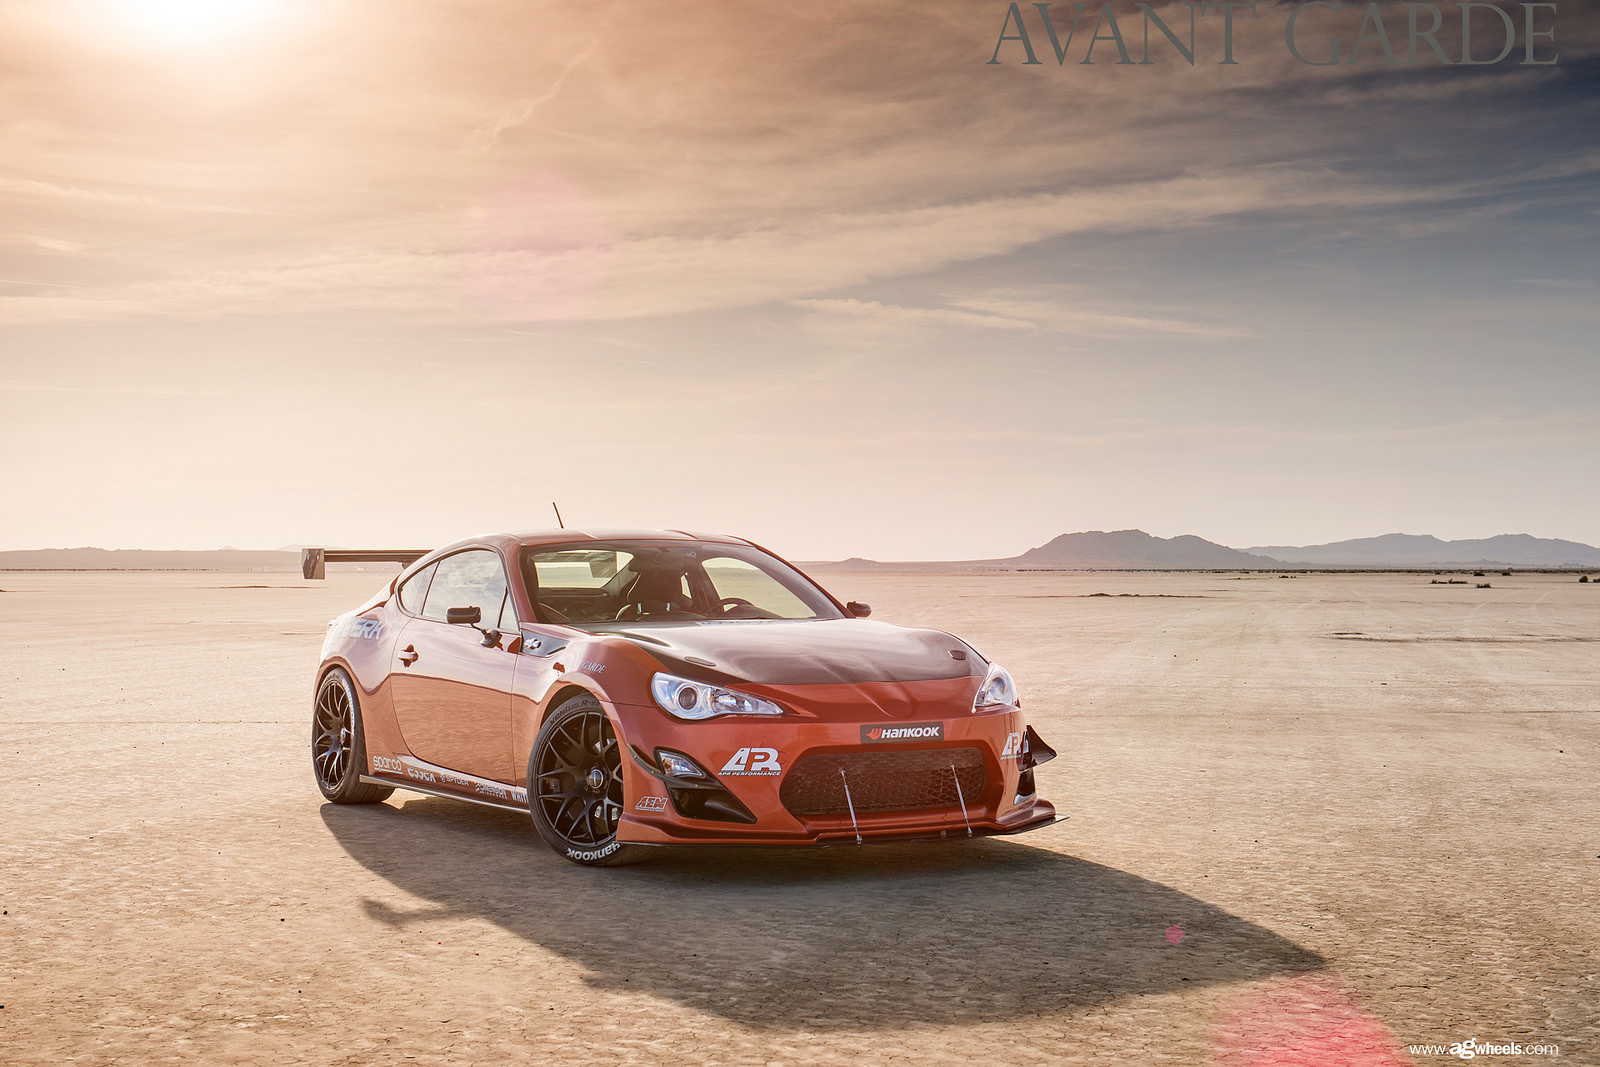 Berktechnology's Scion FRS